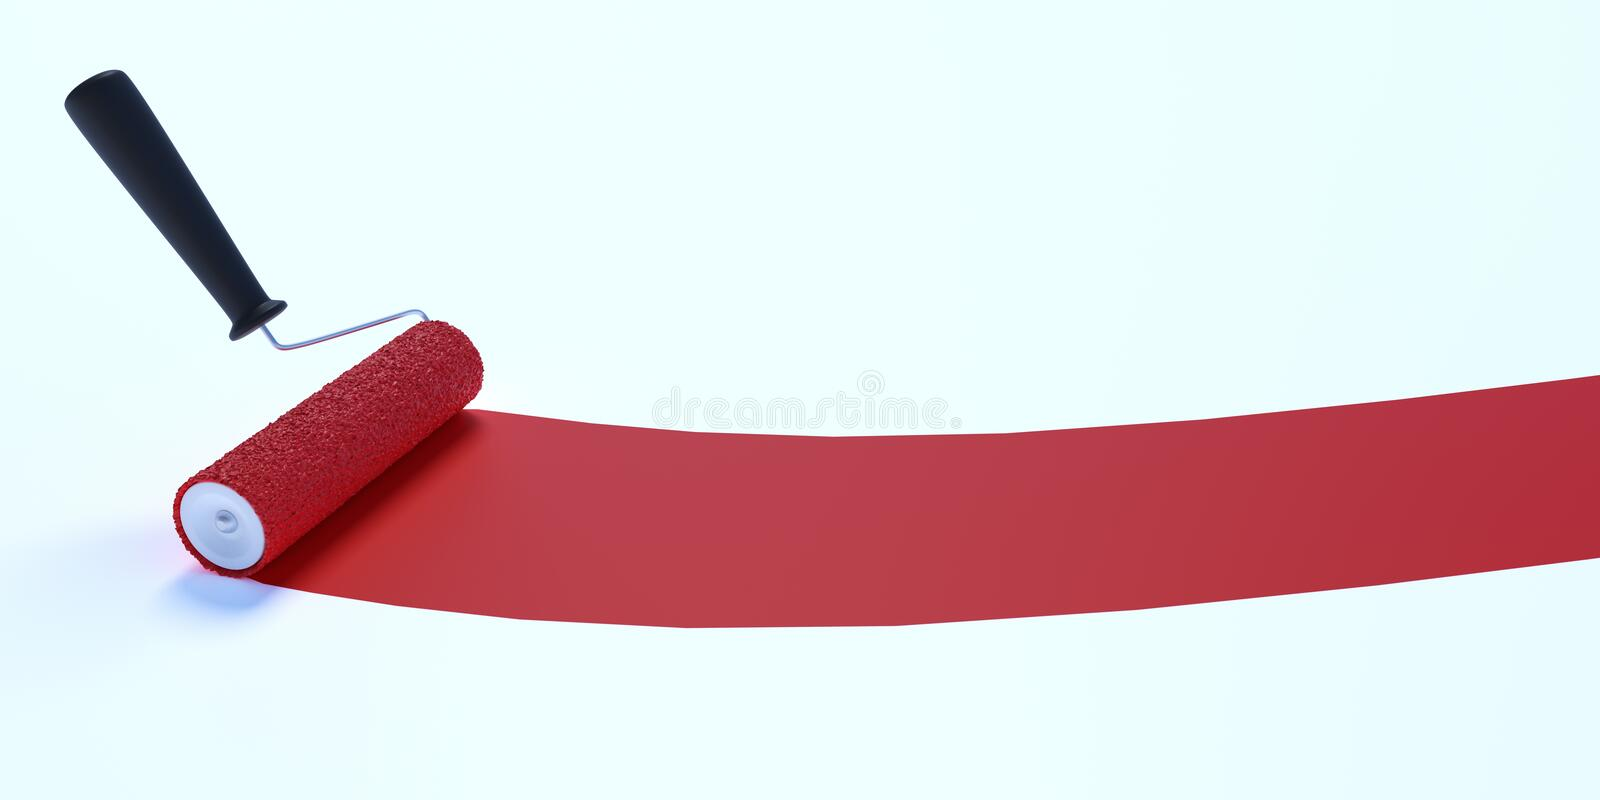 Paint roller with red color. Isolated on white background. 3D rendered illustration. Paint roller with red color. Isolated on white background. 3D rendered stock illustration